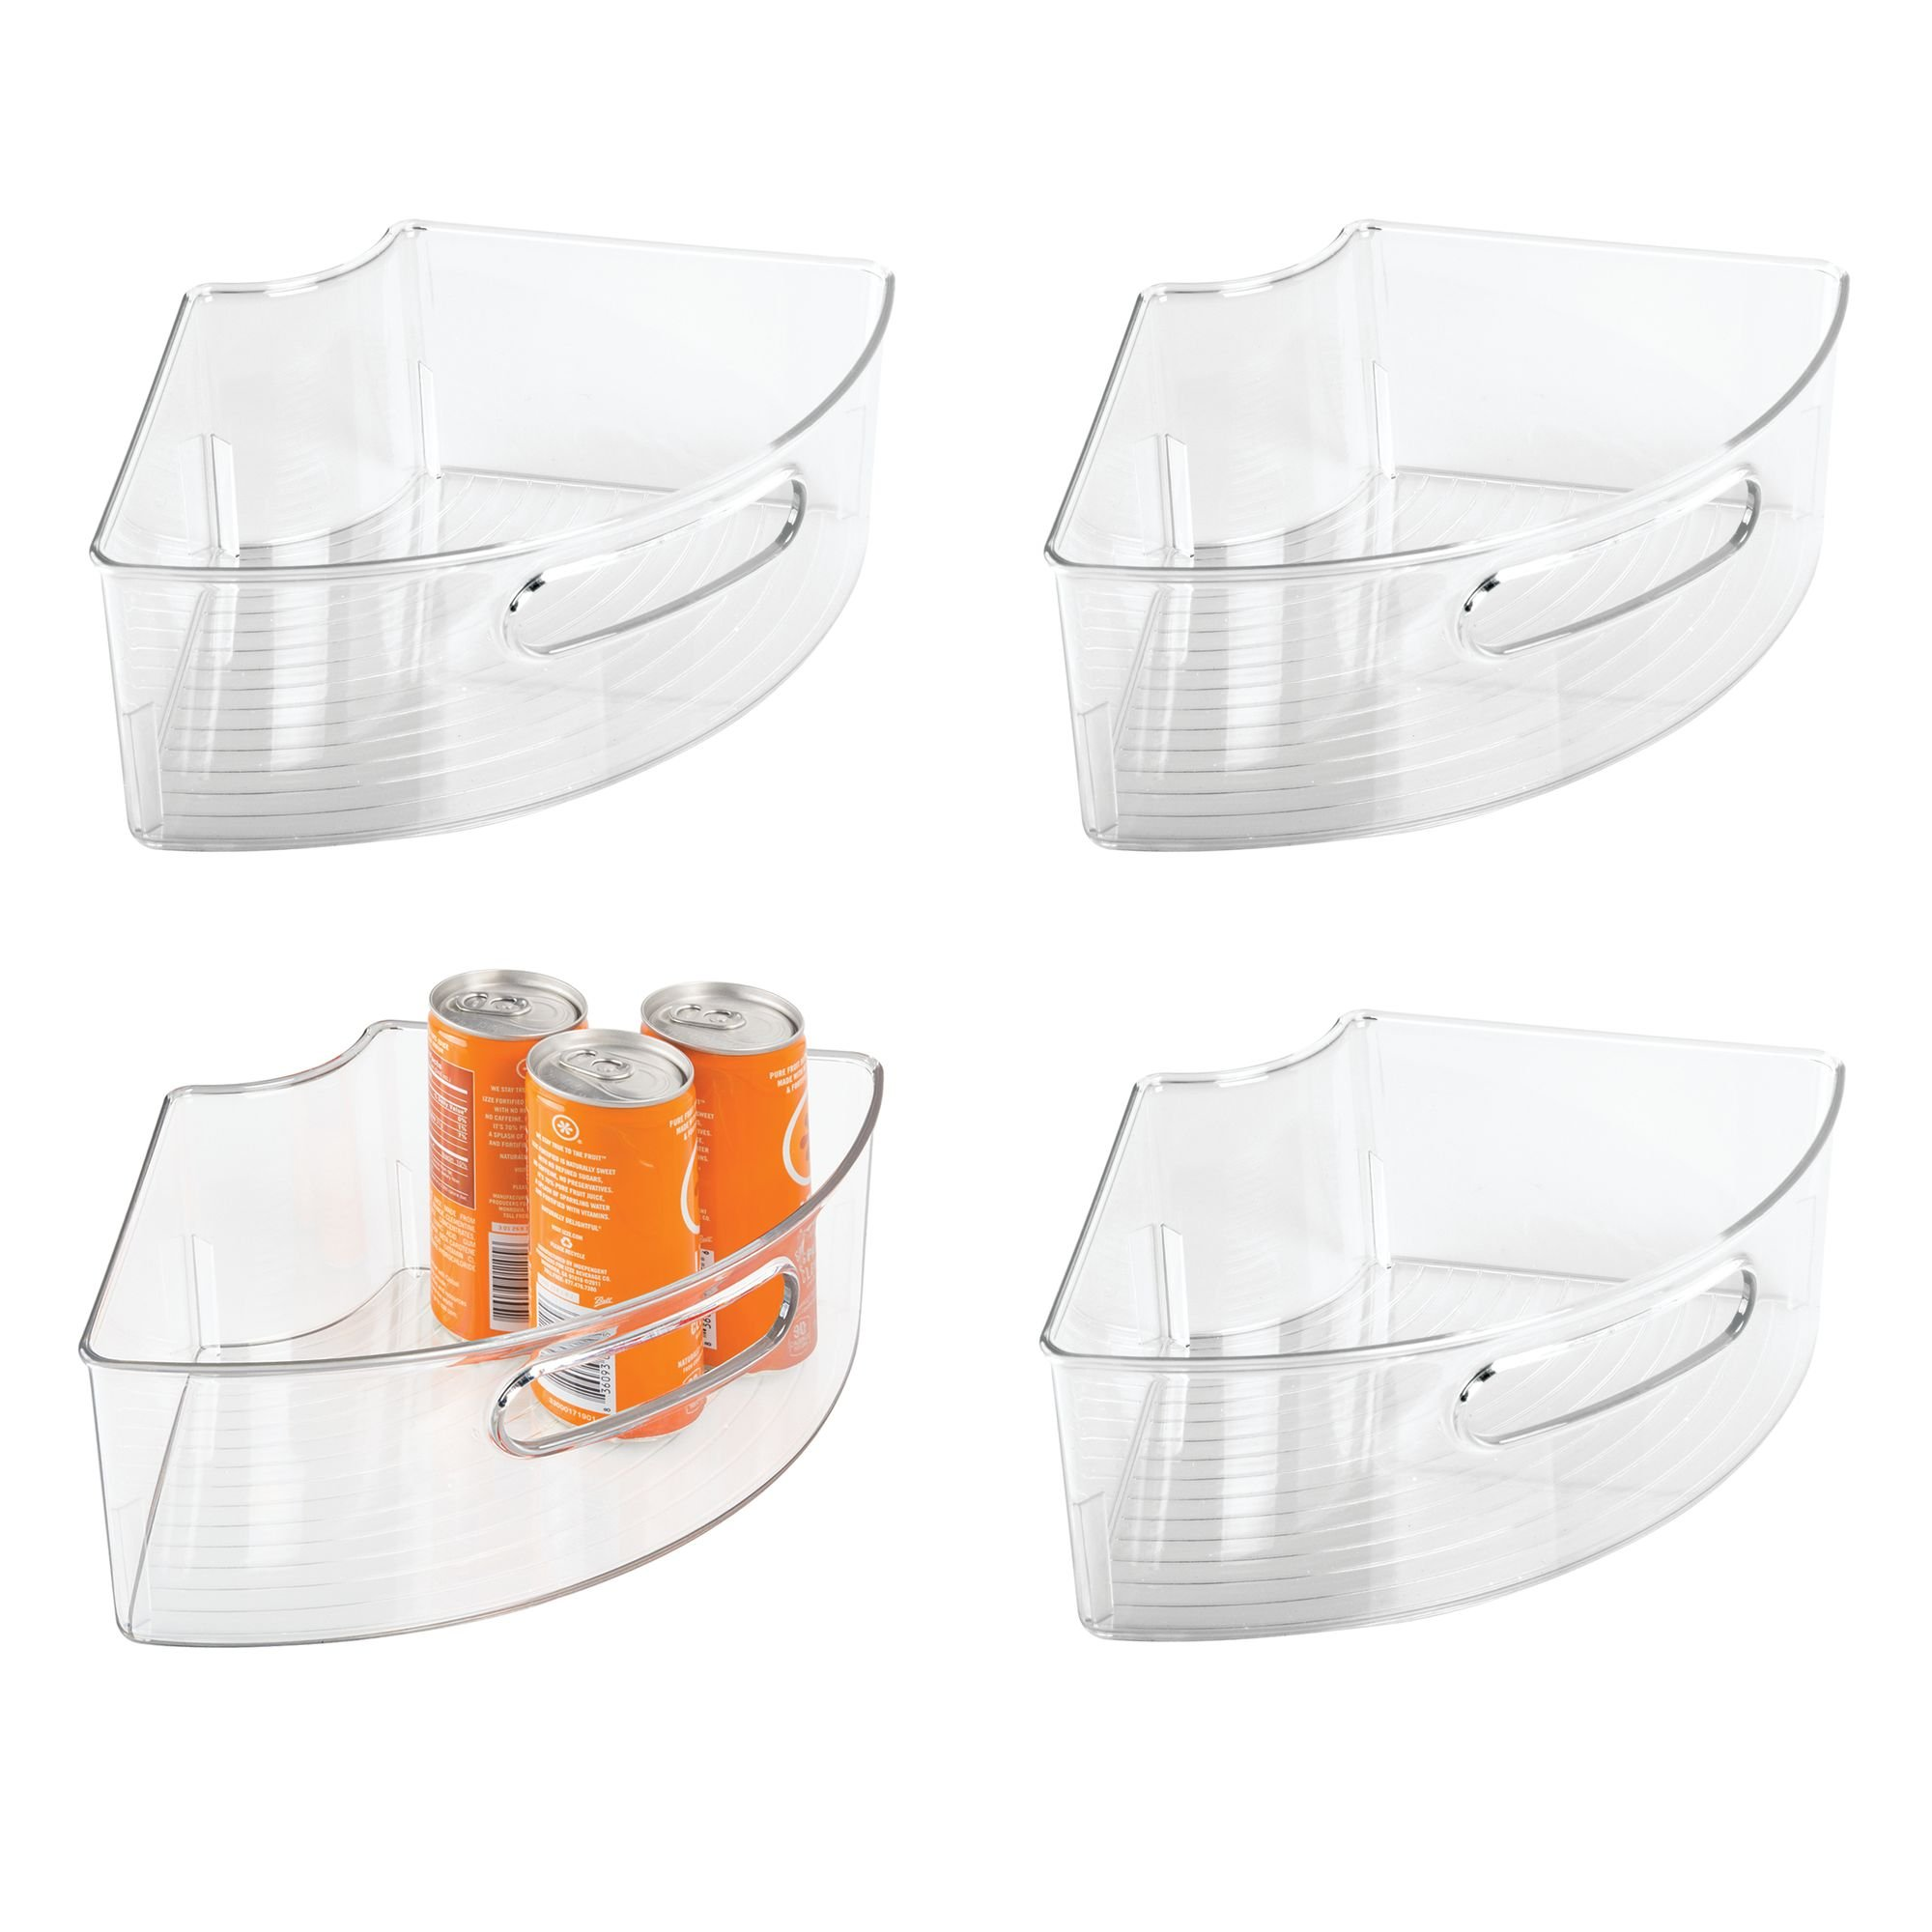 mDesign Kitchen Cabinet Lazy Susan Storage Organizer Bin with Front Handle - Small Pie-Shaped 1/4 Wedge, 4'' Deep Container – Food Safe, BPA Free - Pack of 4, Clear